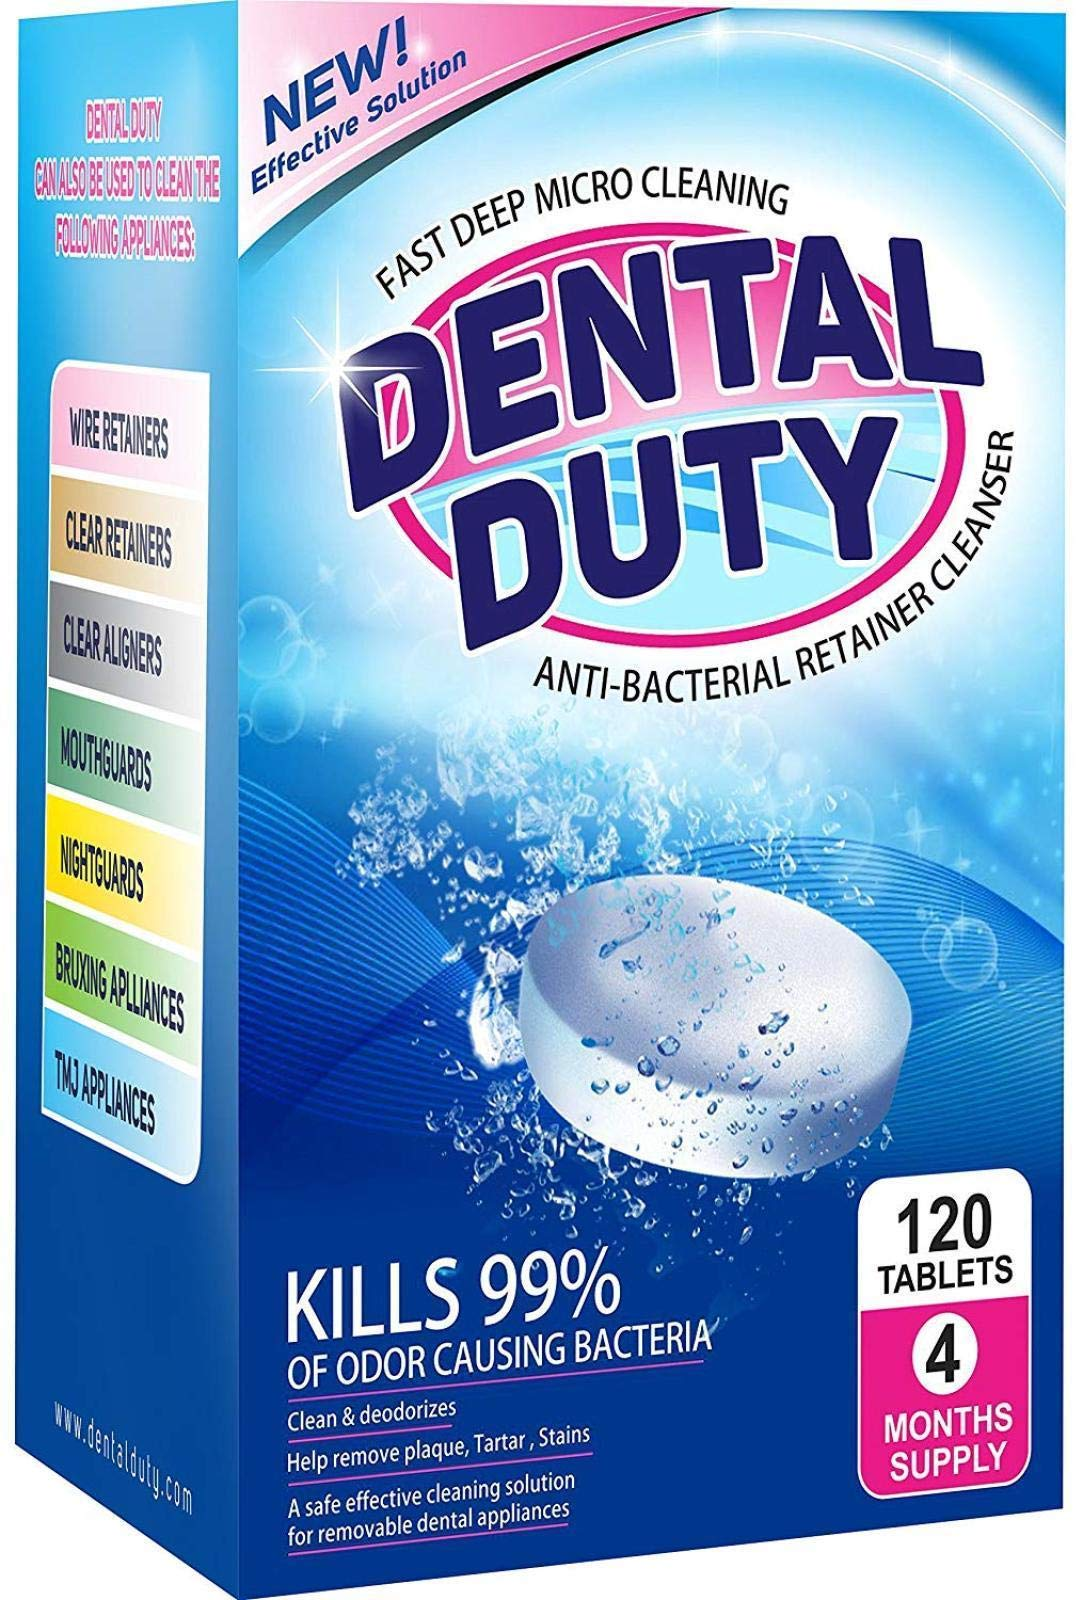 120 Retainer and Denture Cleaning Tablets -(4 Months Supply)- Cleaner Removes Bad Odor, Plaque, Stains from Dentures, Retainers, Night Guards, Mouth Guards & Removable Dental Appliances. Made in USA